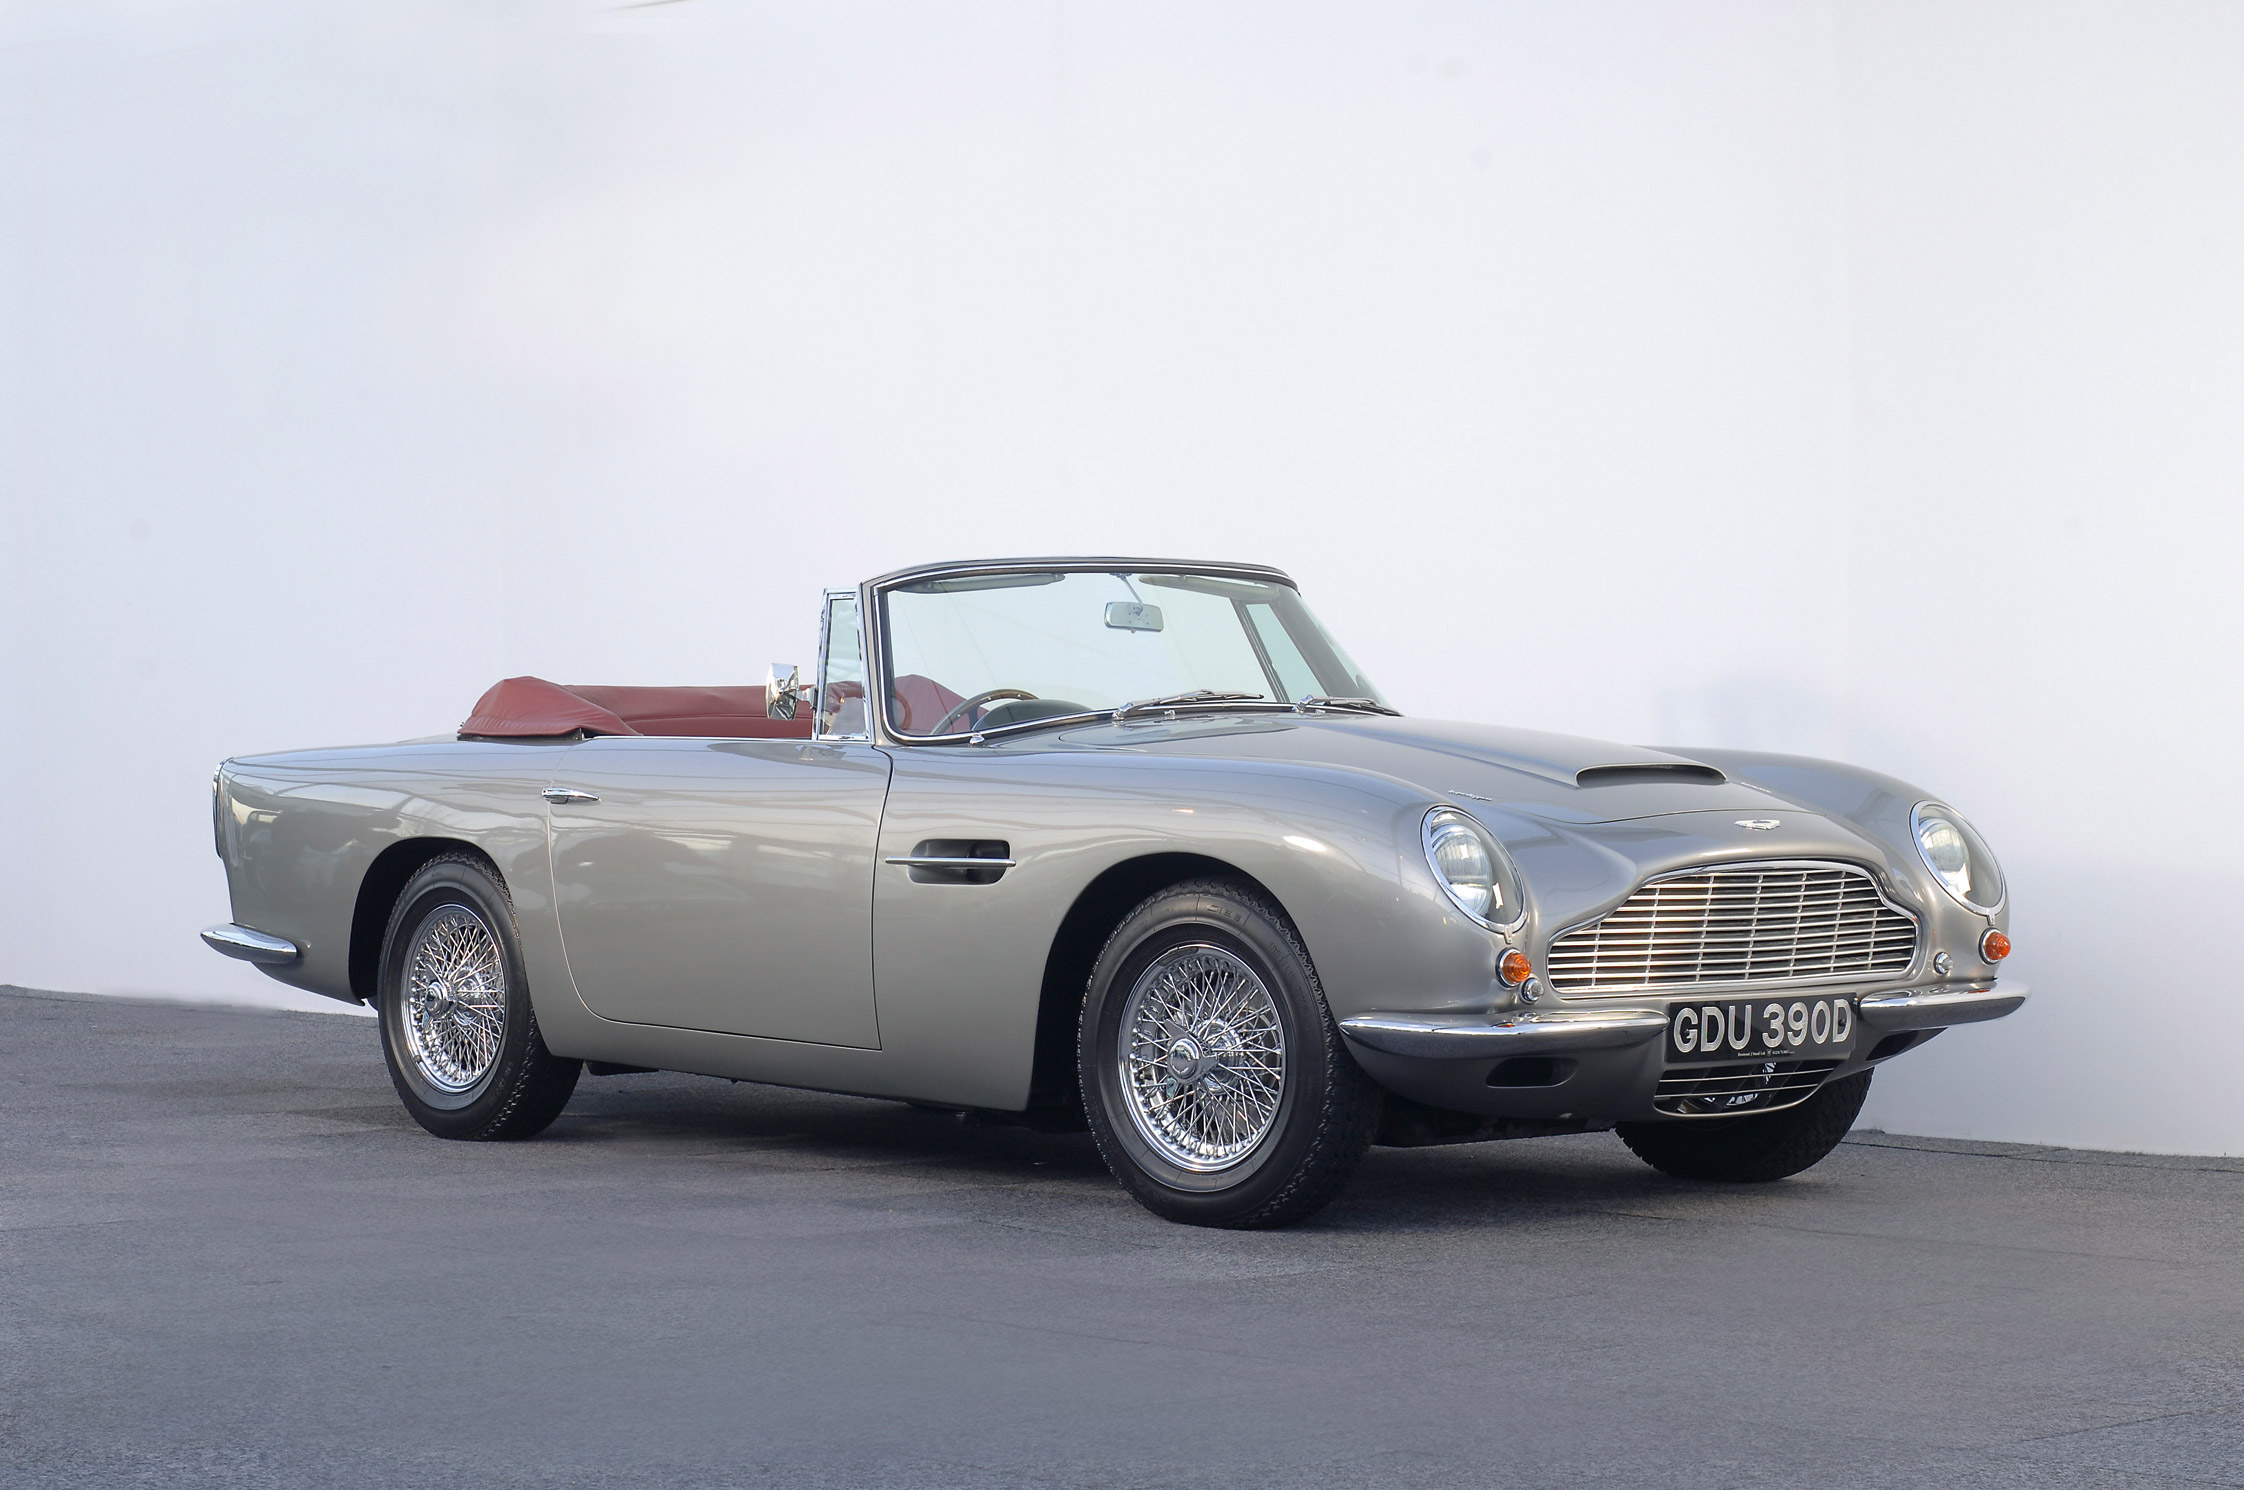 aston martin db5 bonnet with 63803 on 7 further 9923632153 additionally New Aston Martin Vantage Revealed Looks Lot Db10 additionally 1963 e2 86 921965 Aston Martin Db5 2 furthermore Aston Martin Db5.